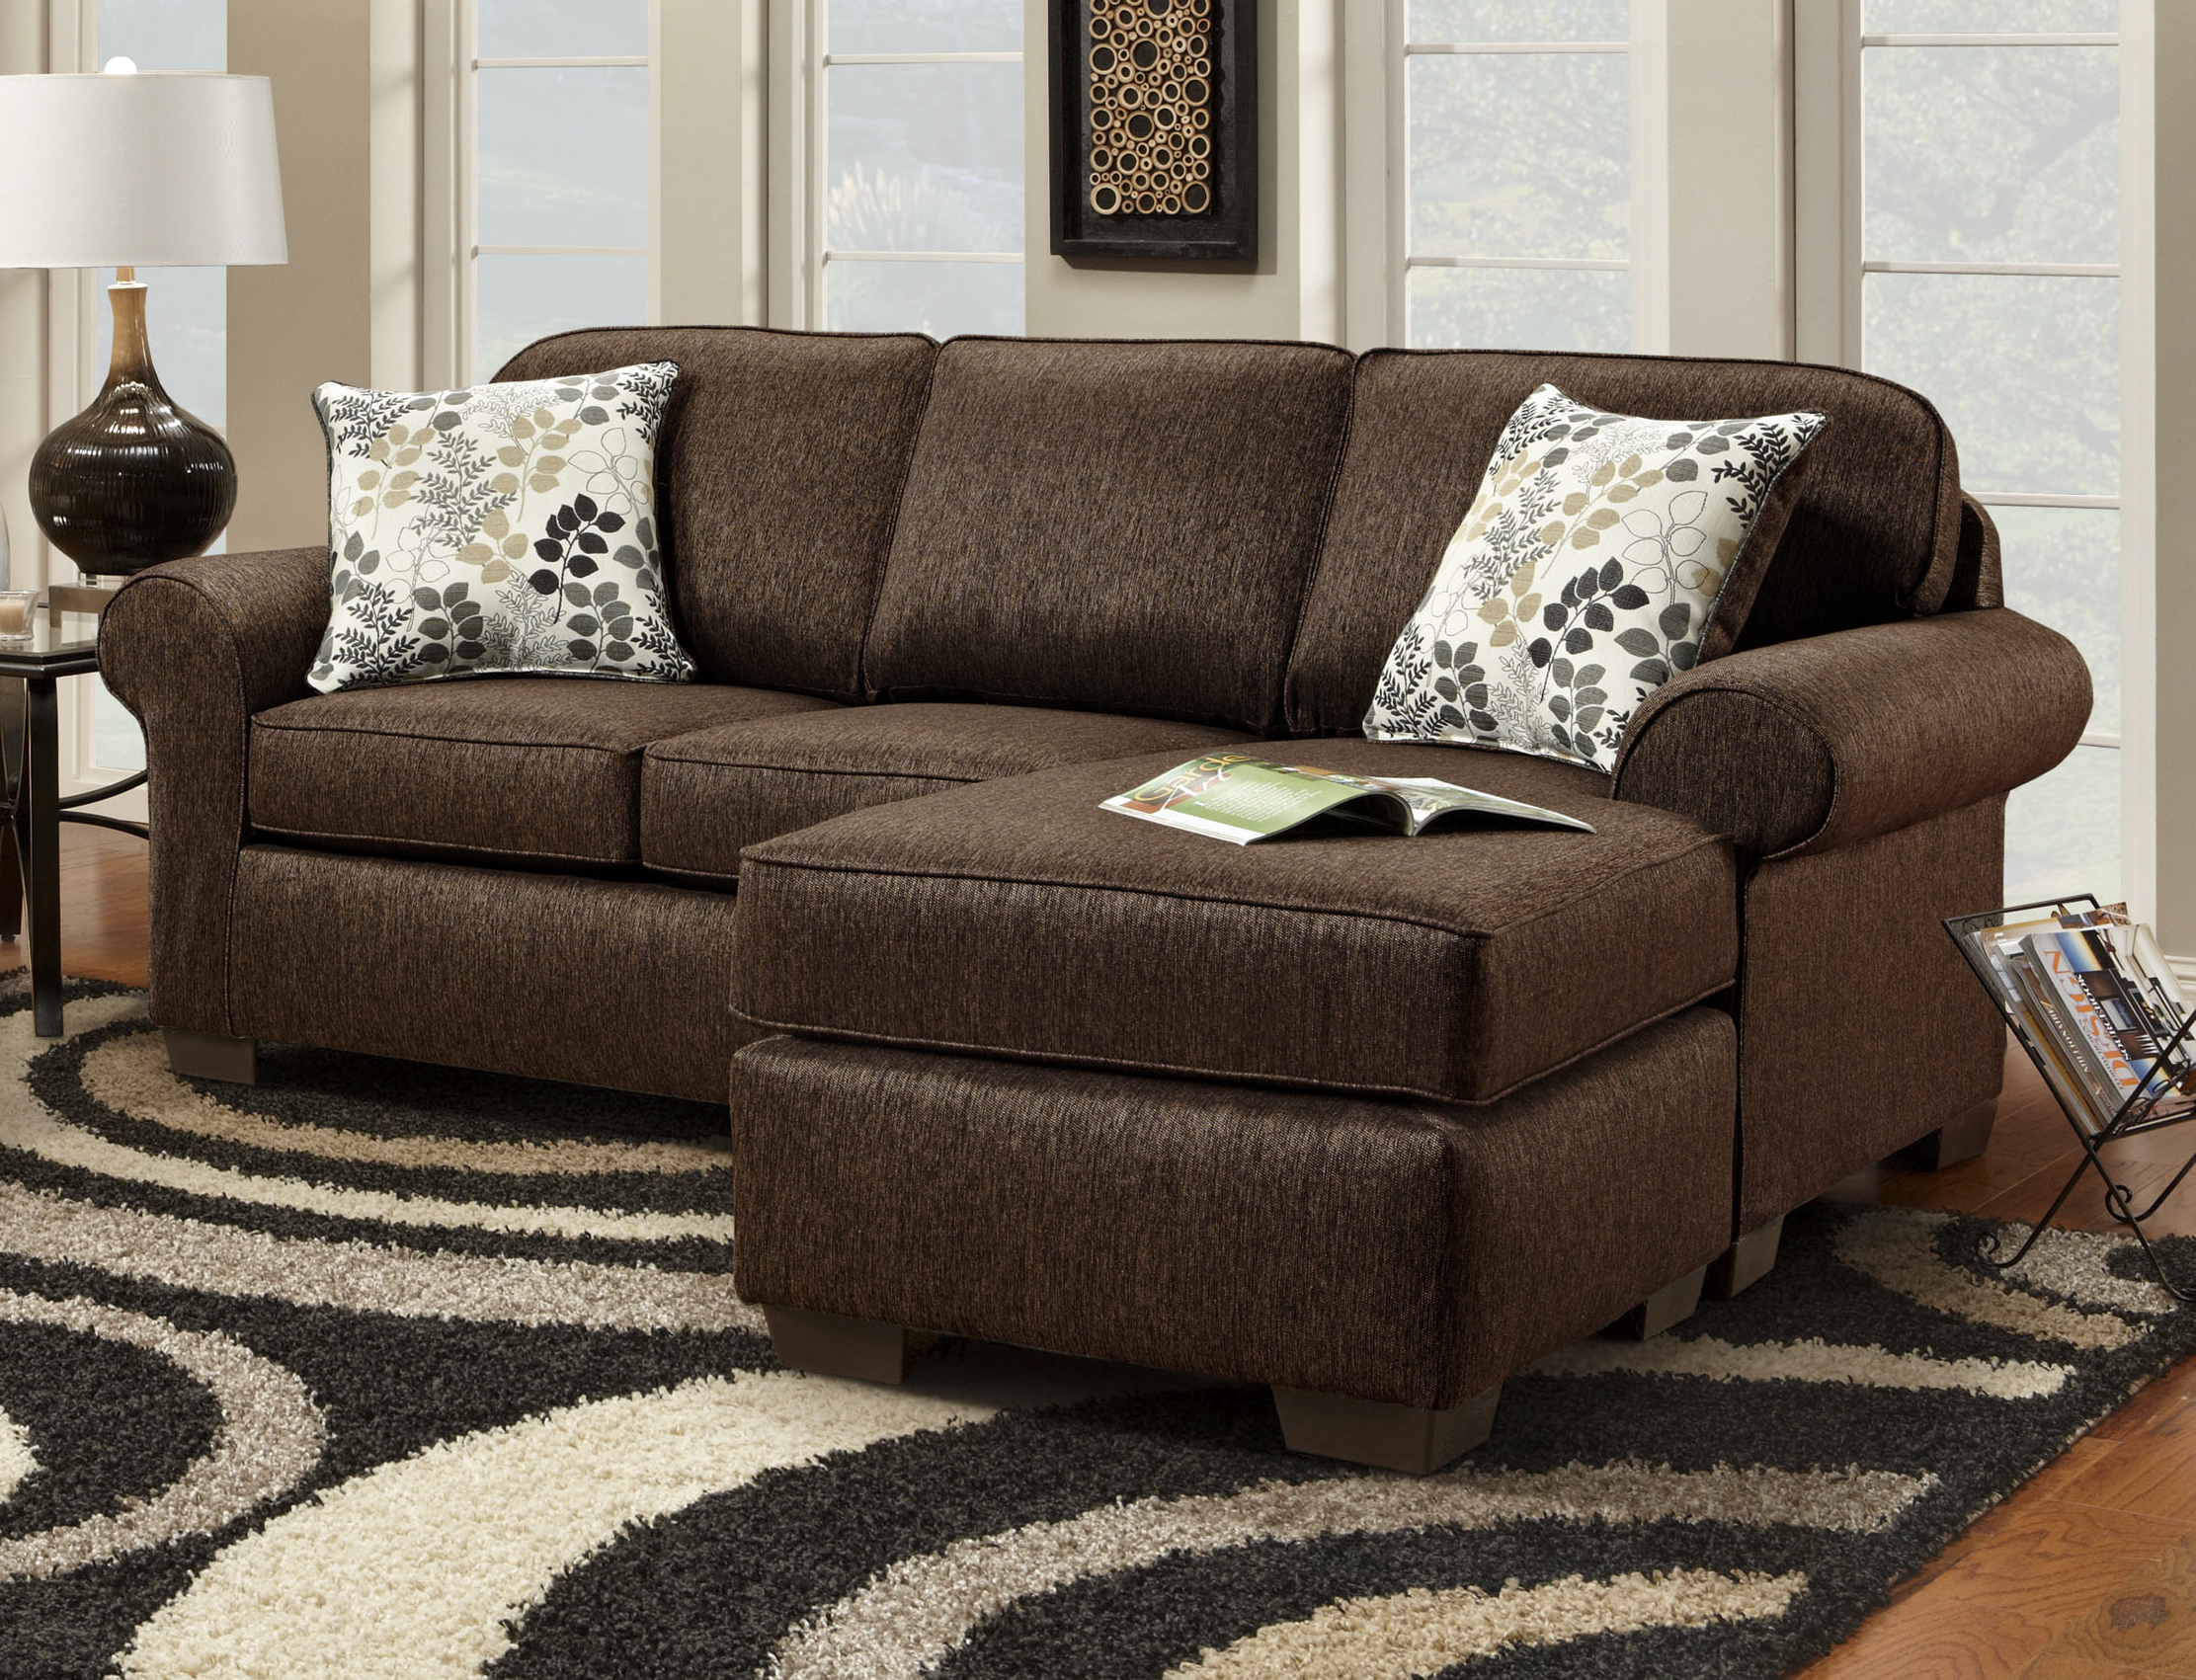 American Wholesale Furniture Elizabeth Sofa With Chaise